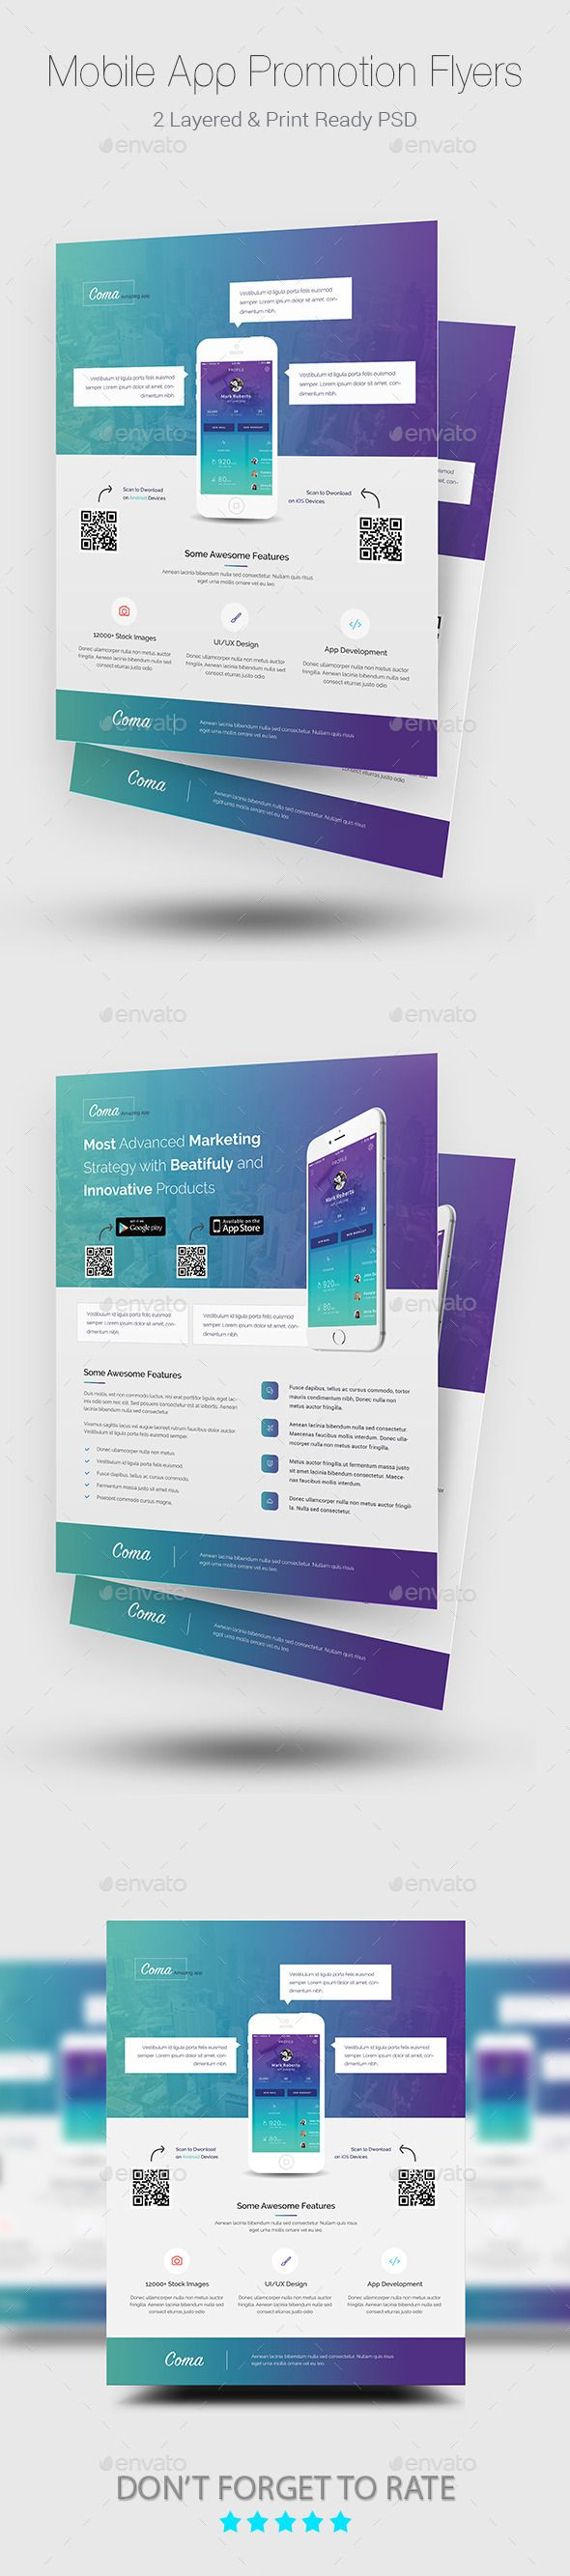 Poster design app - Mobile App Promotion Flyer Templates